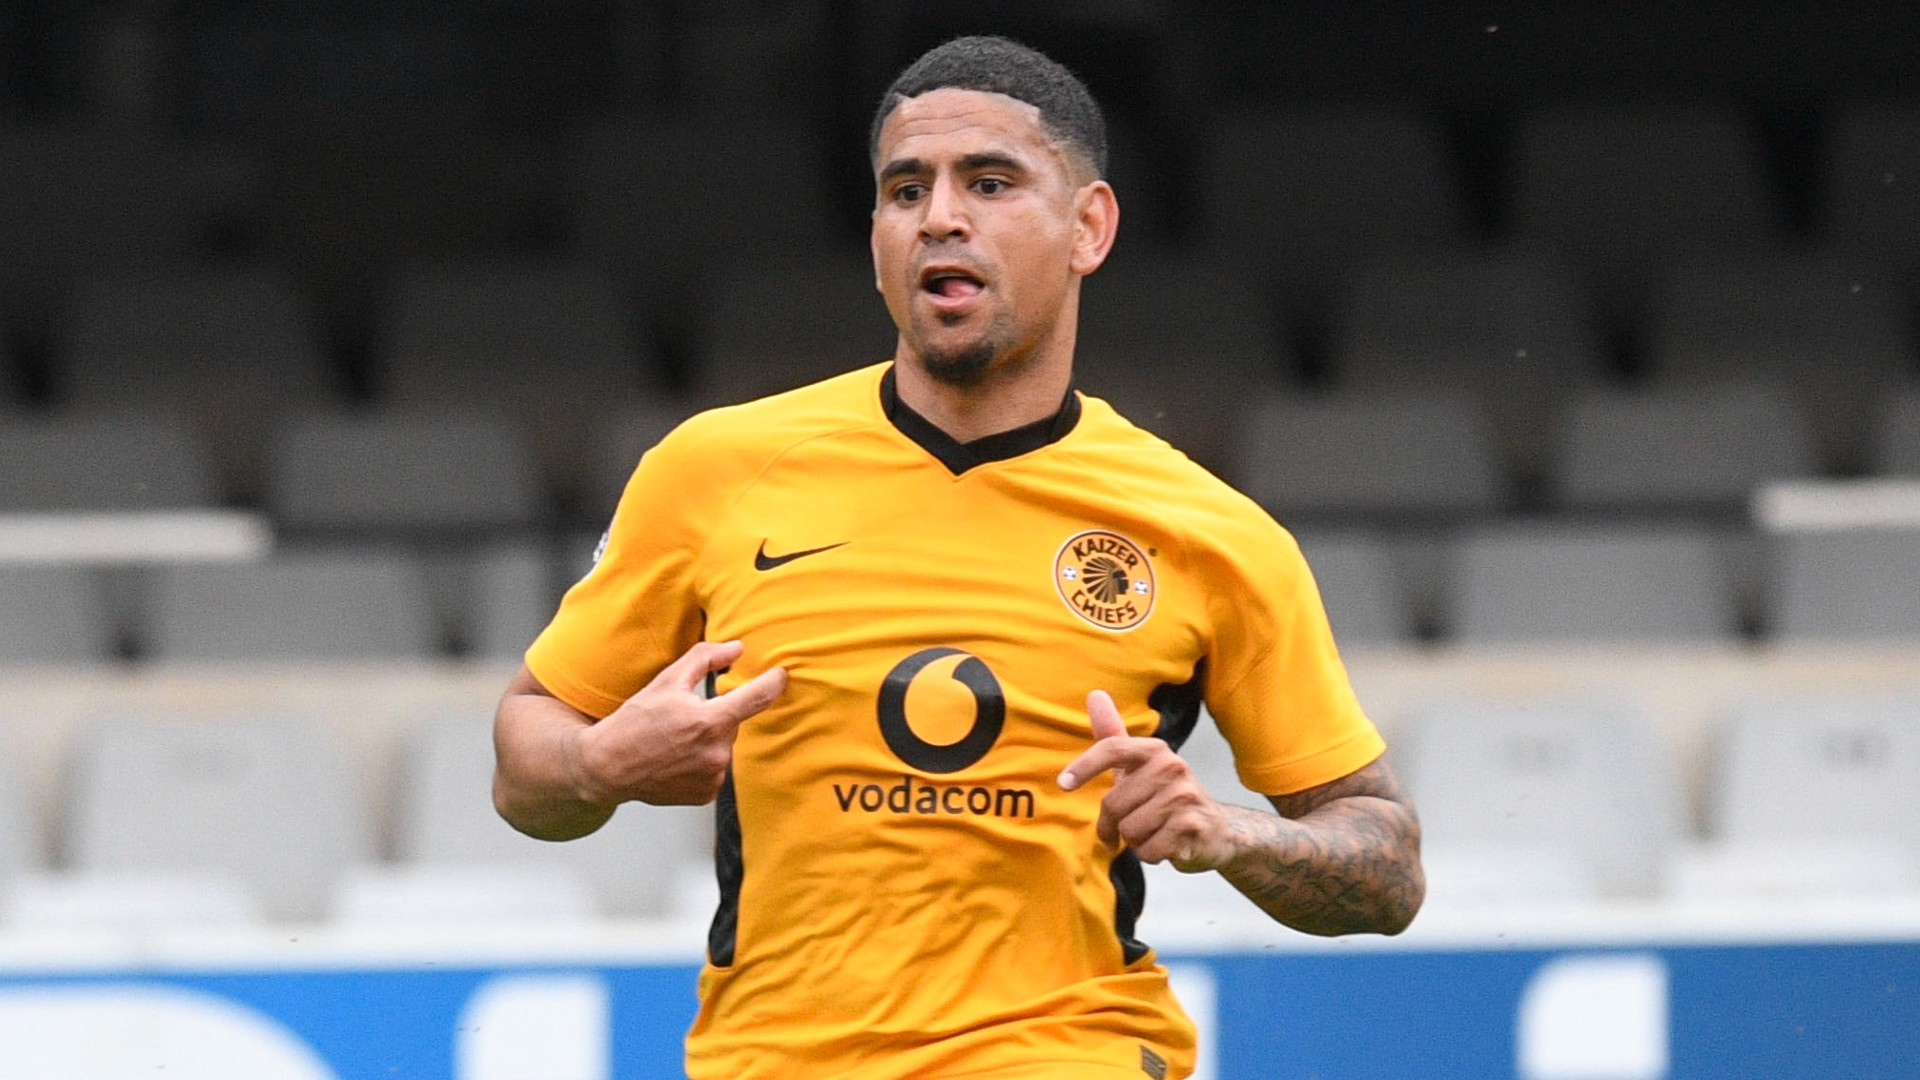 Kaizer Chiefs player ratings after Chippa United win: Dolly scintillating, Akpeyi's safe hands